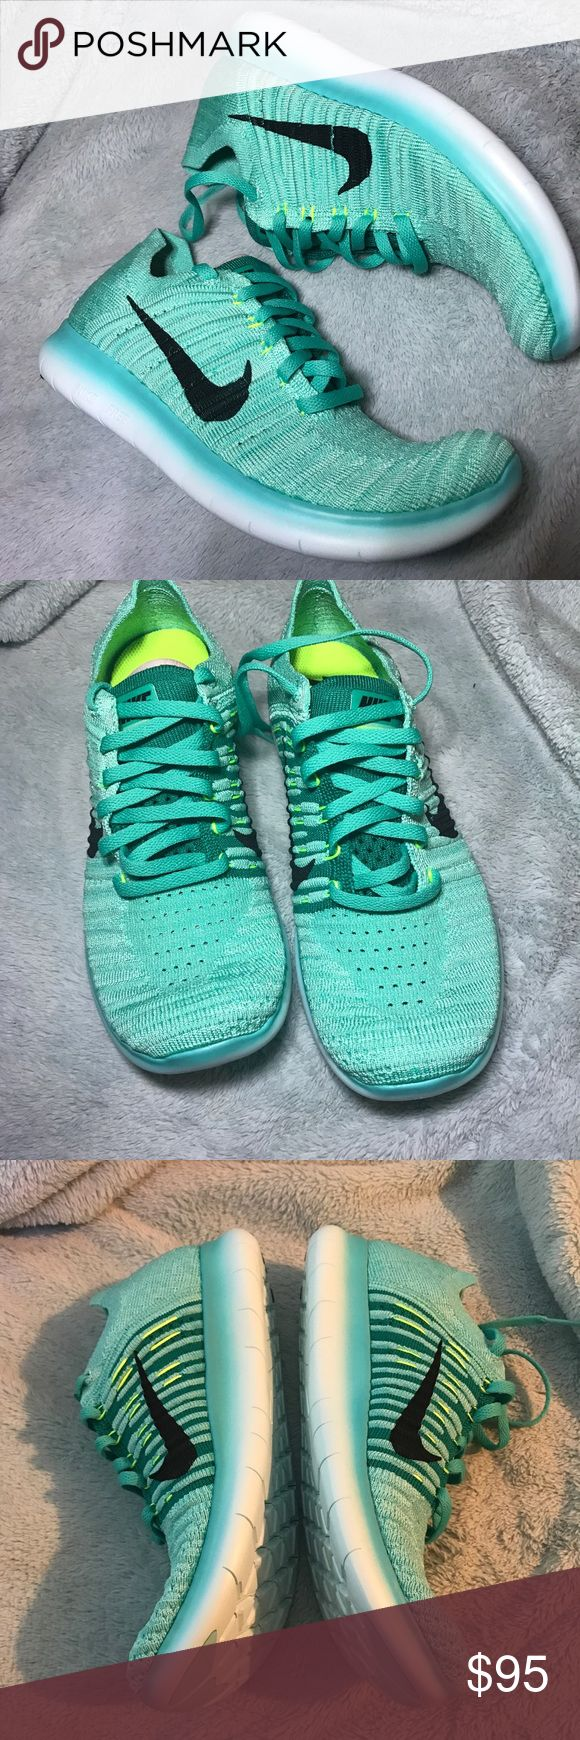 Women's Nike Free Run Flyknit size 8 NEW Brand new if box Tiffany color Nike free run Flyknit sneakers. Great color for spring ! Very comfortable sneaker Nike Shoes Athletic Shoes